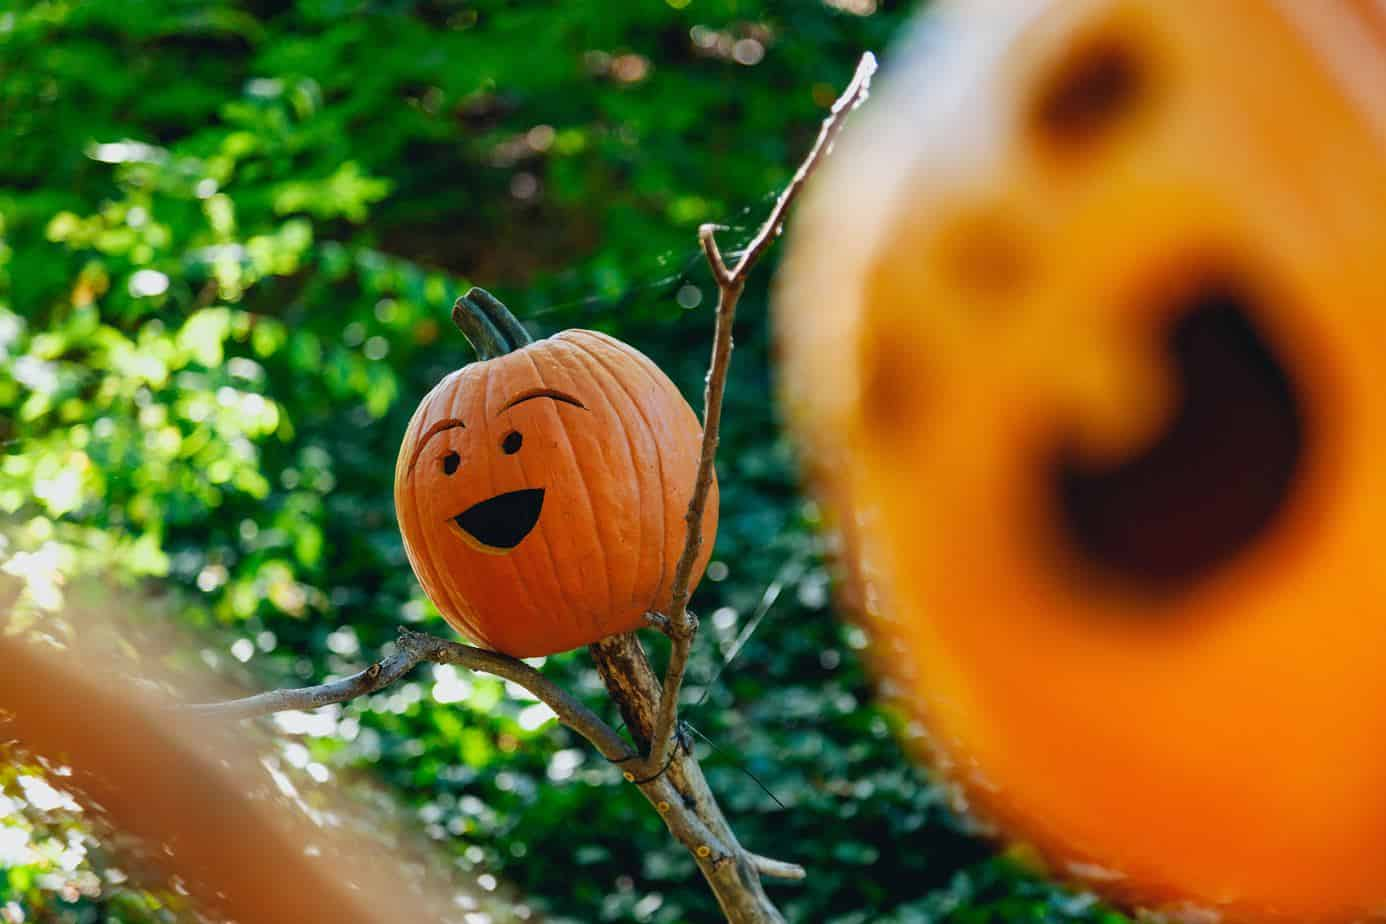 A picture of a funny looking Jack o lantern for halloween